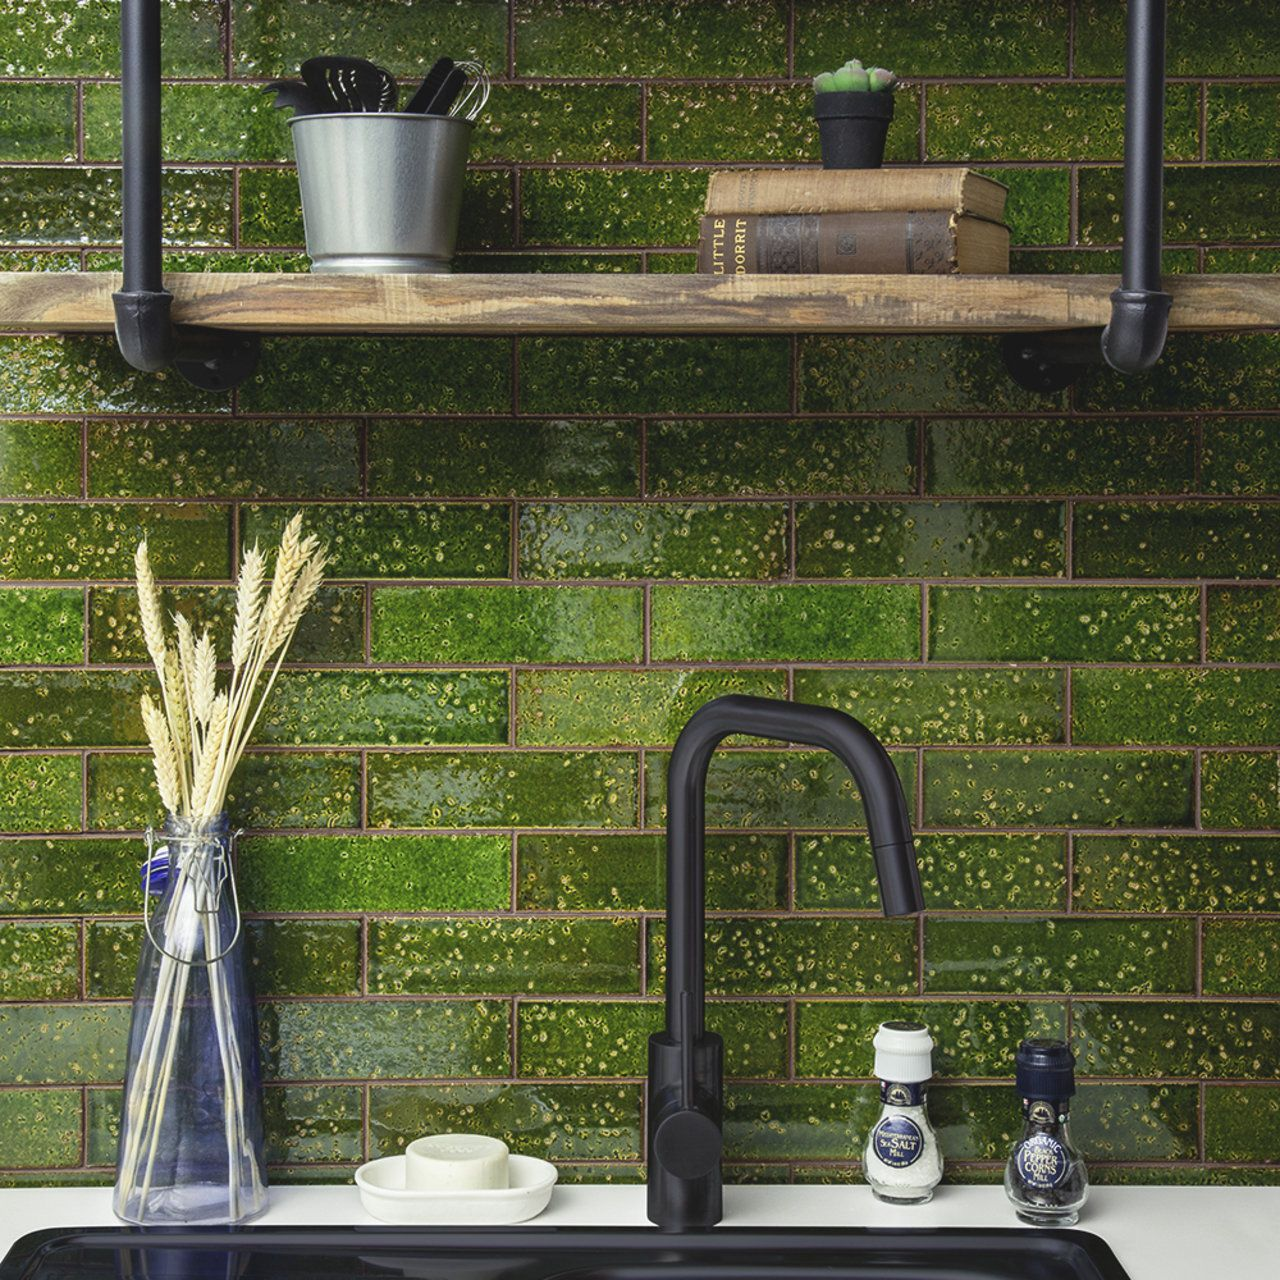 Variegated Green Subway Tiling By Nemo Tile Stone Adds A